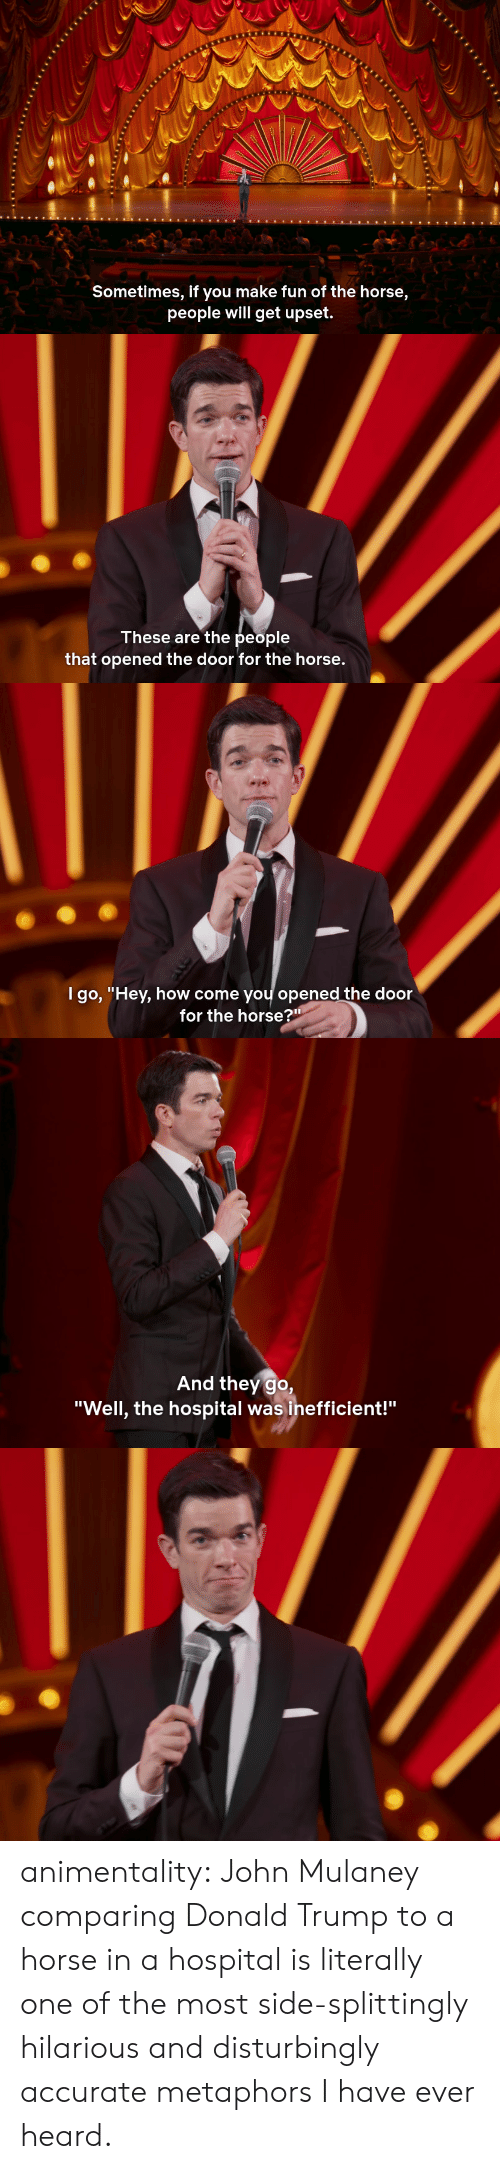 "Donald Trump, Tumblr, and Blog: Sometimes, if you make fun of the horse,  people will get upset.   These are the people  that opened the door for the horse.   l go, ""Hev, how come vou opened the door  for the horse?""   And they go,  ""Well, the hospital was inefficient!"" animentality:  John Mulaney comparing Donald Trump to a horse in a hospital is literally one of the most side-splittingly hilarious and disturbingly accurate metaphors I have ever heard."